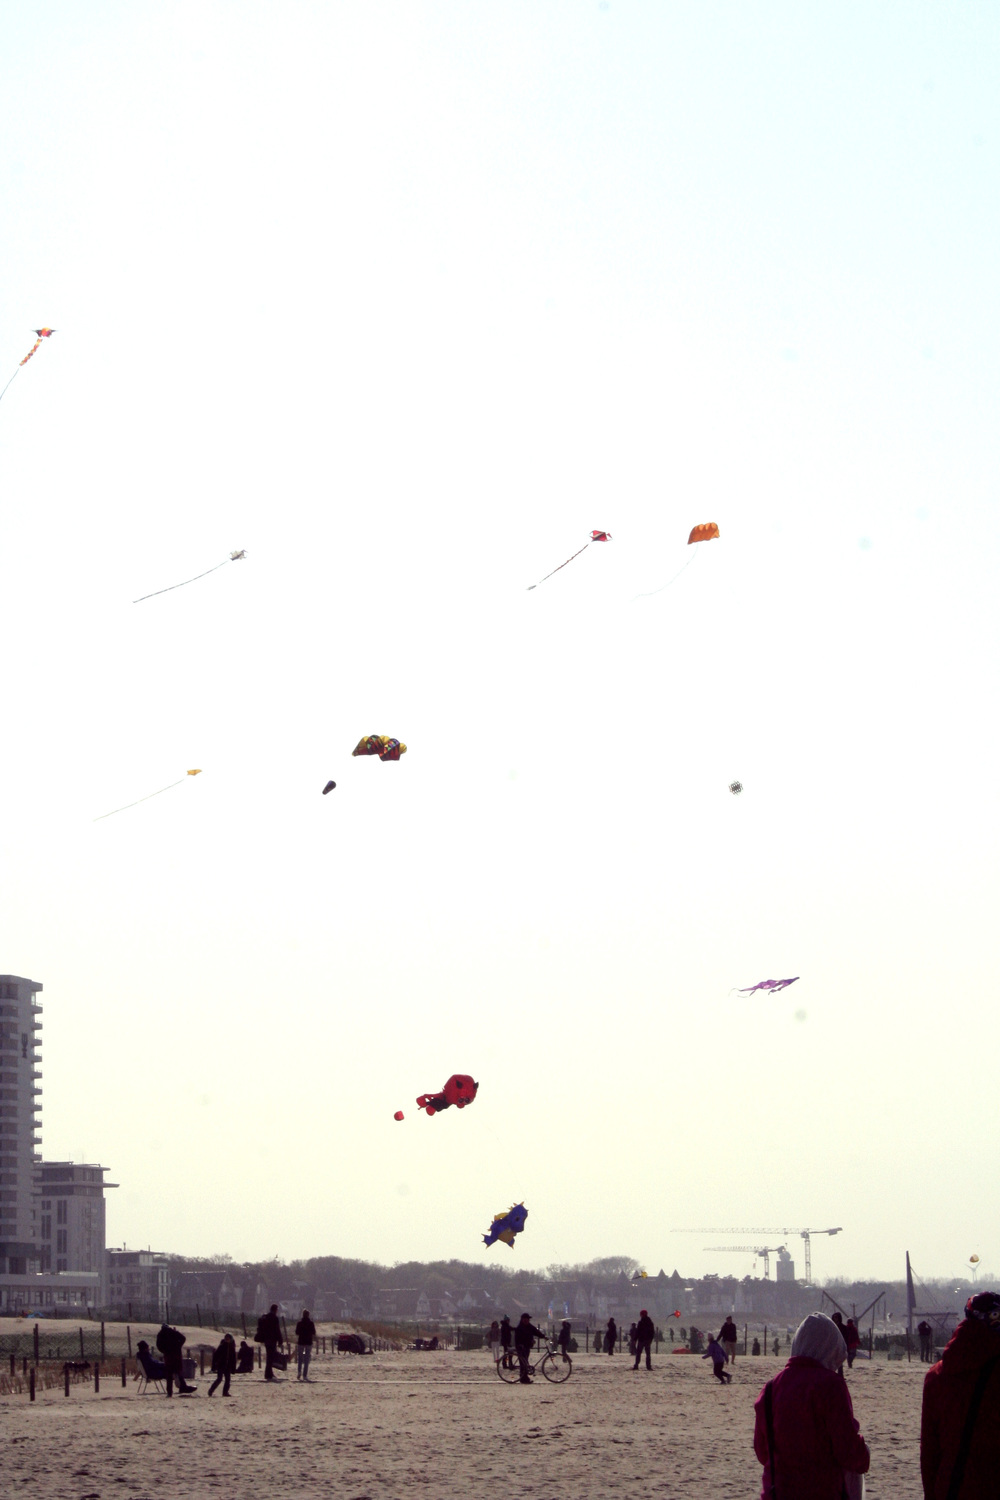 Check out those kites. Some of them are giant fish.